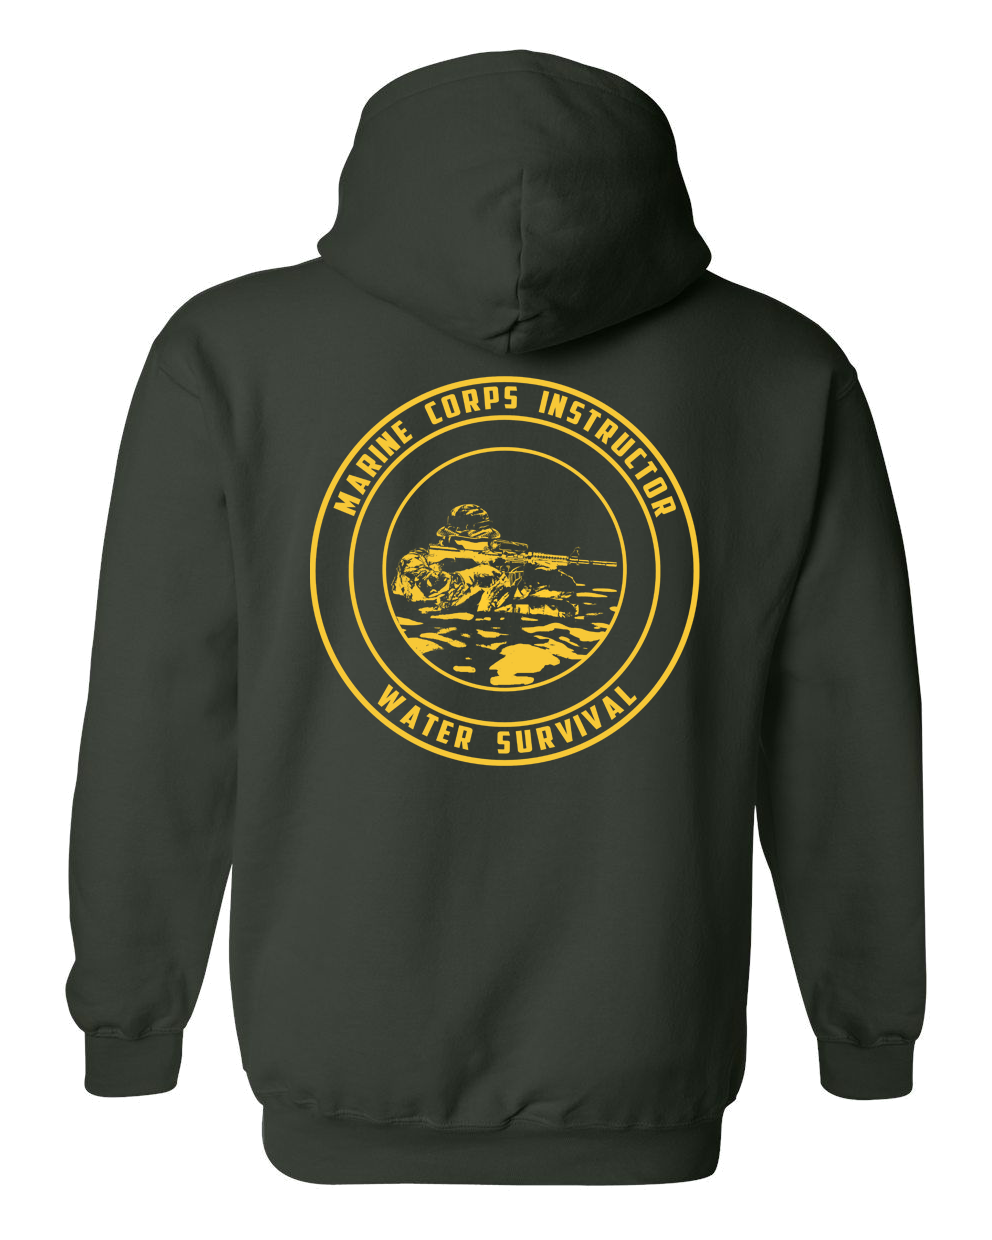 Marine Combat Corps Instructor of Water Survival ( M.C.I.W.S) Hoodie